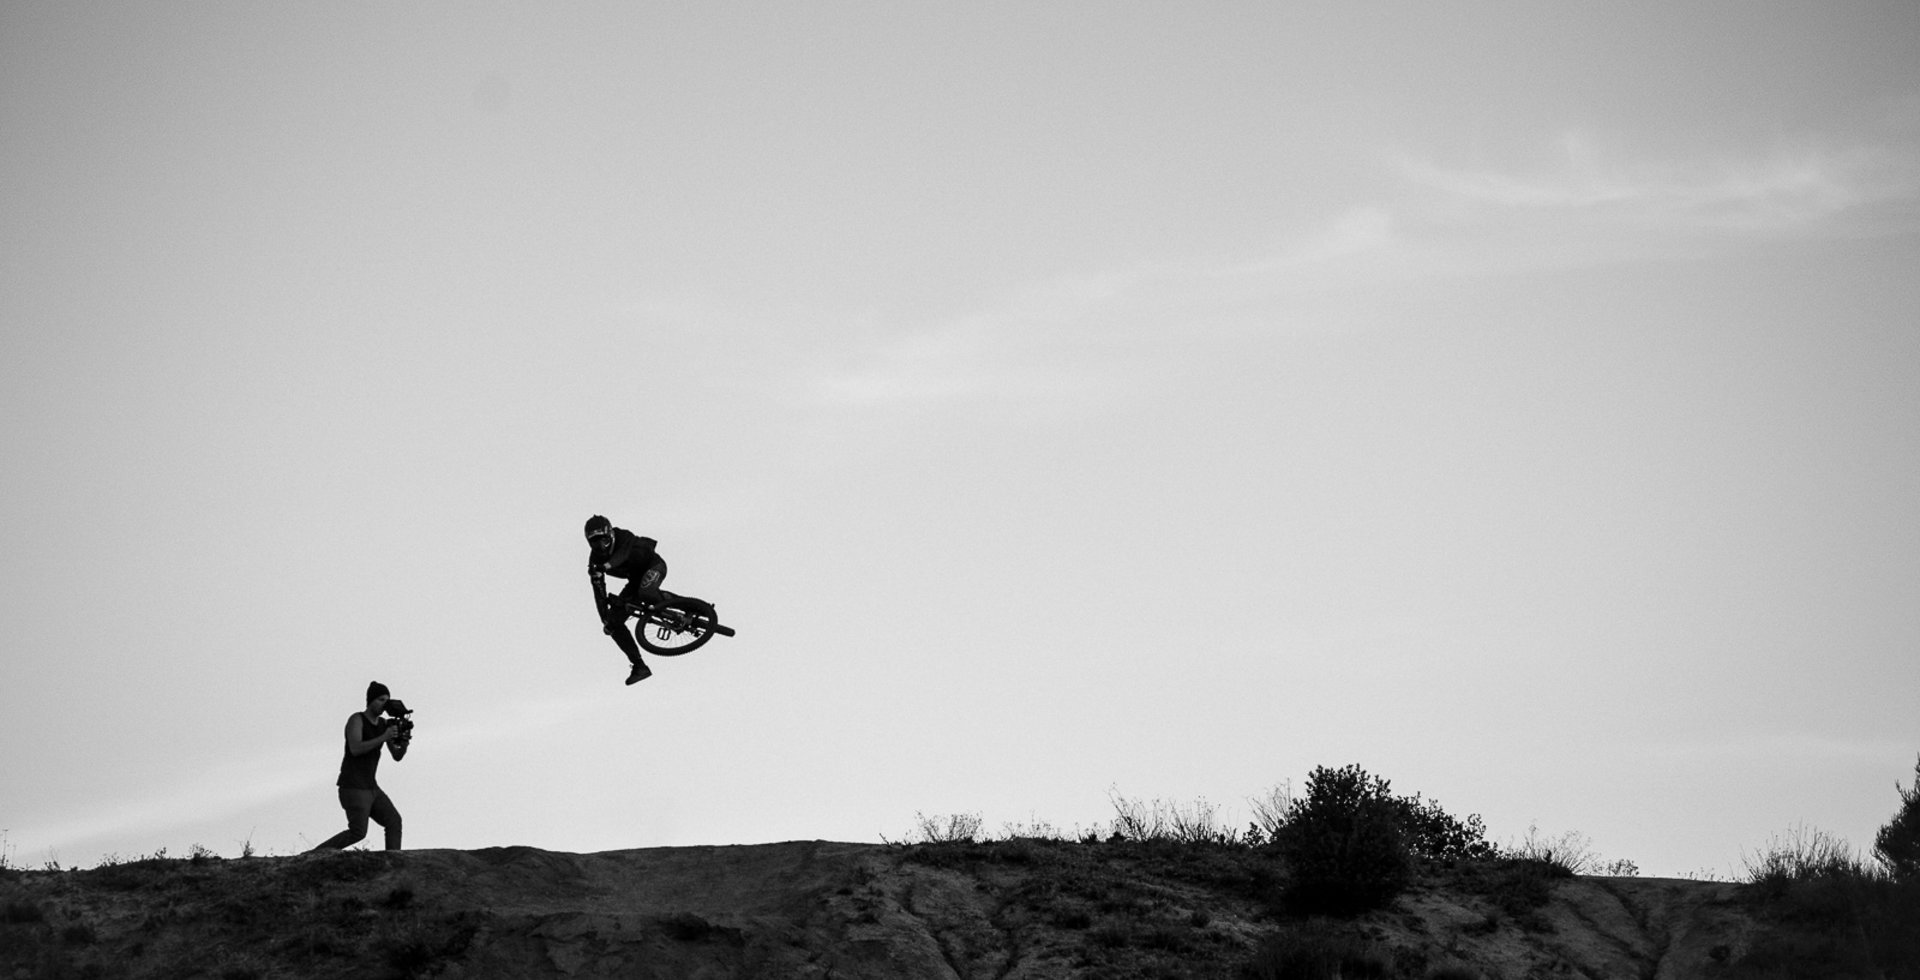 """Clay Porter, guest filming a 'Life Behind Bars' segment at the jumps in Pine Valley, CA. This is Brandon Semenuk sending at last light, but Nico Vink and Brendan 'Brendog' Fairclough were also there. This was the very beginning of 2014, and I honestly couldn't believe I was shooting these three guys just 45 minutes from my house. This shoot was the first time I'd worked with Brandon."""